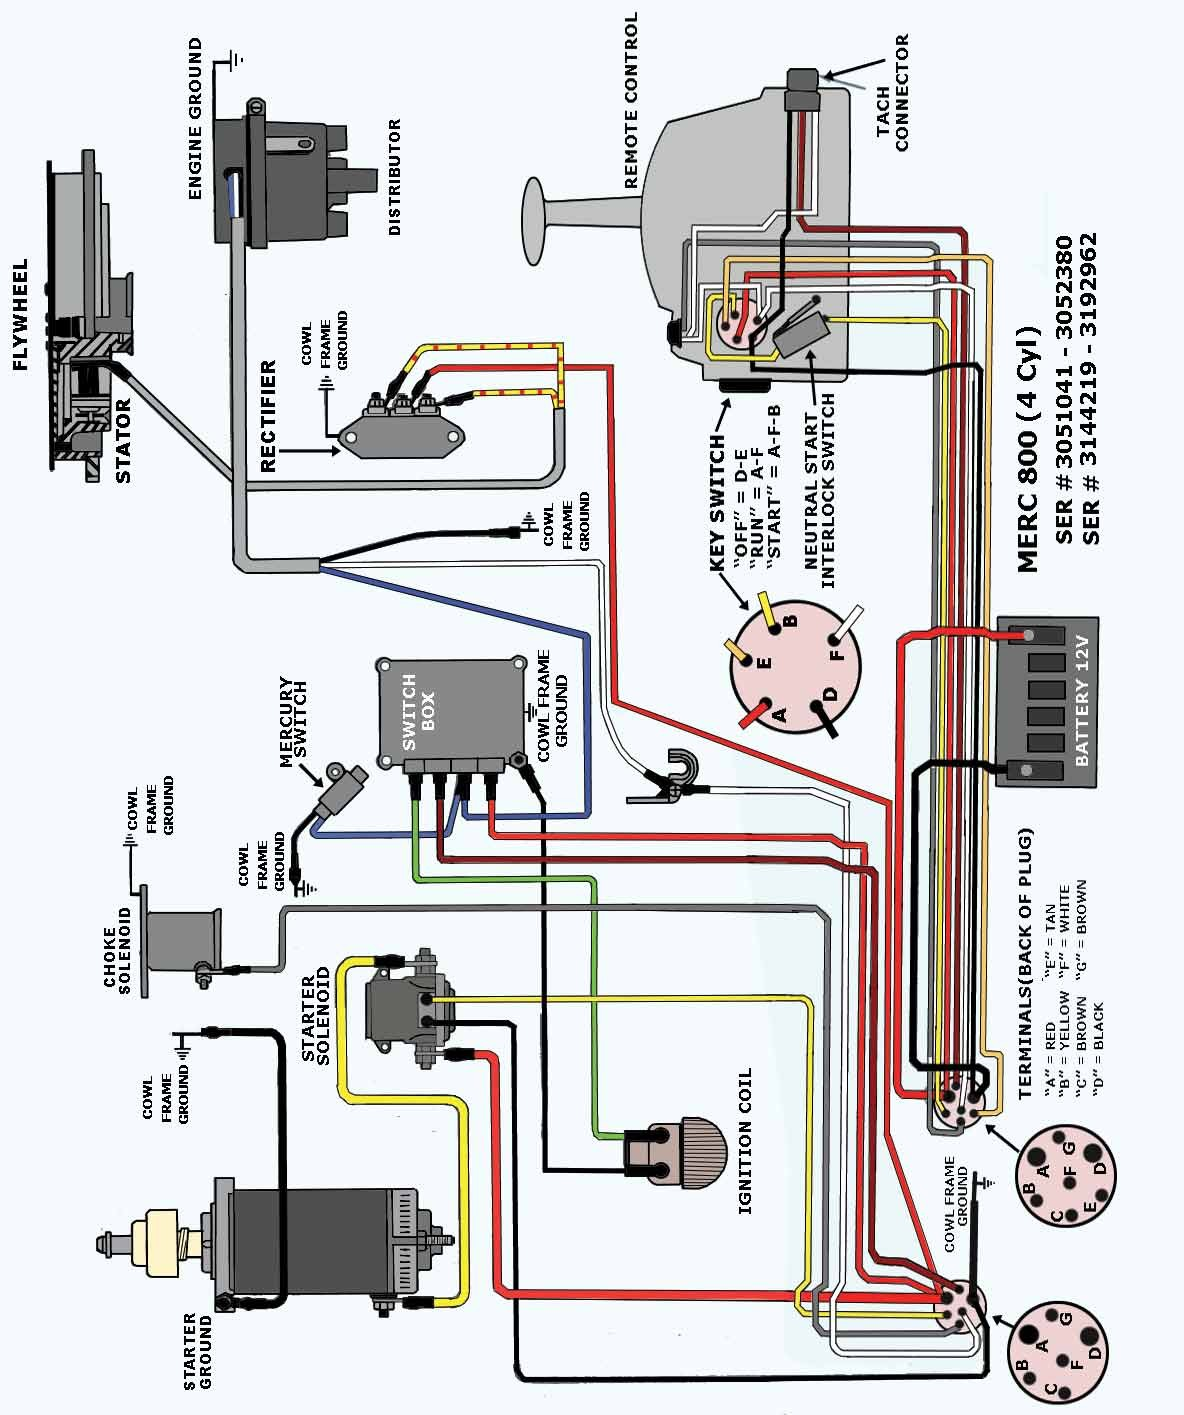 ... thunderbolt v ignition wiring diagram basic guide wiring diagram \u2022  4.3 Mercruiser Parts mercruiser ignition